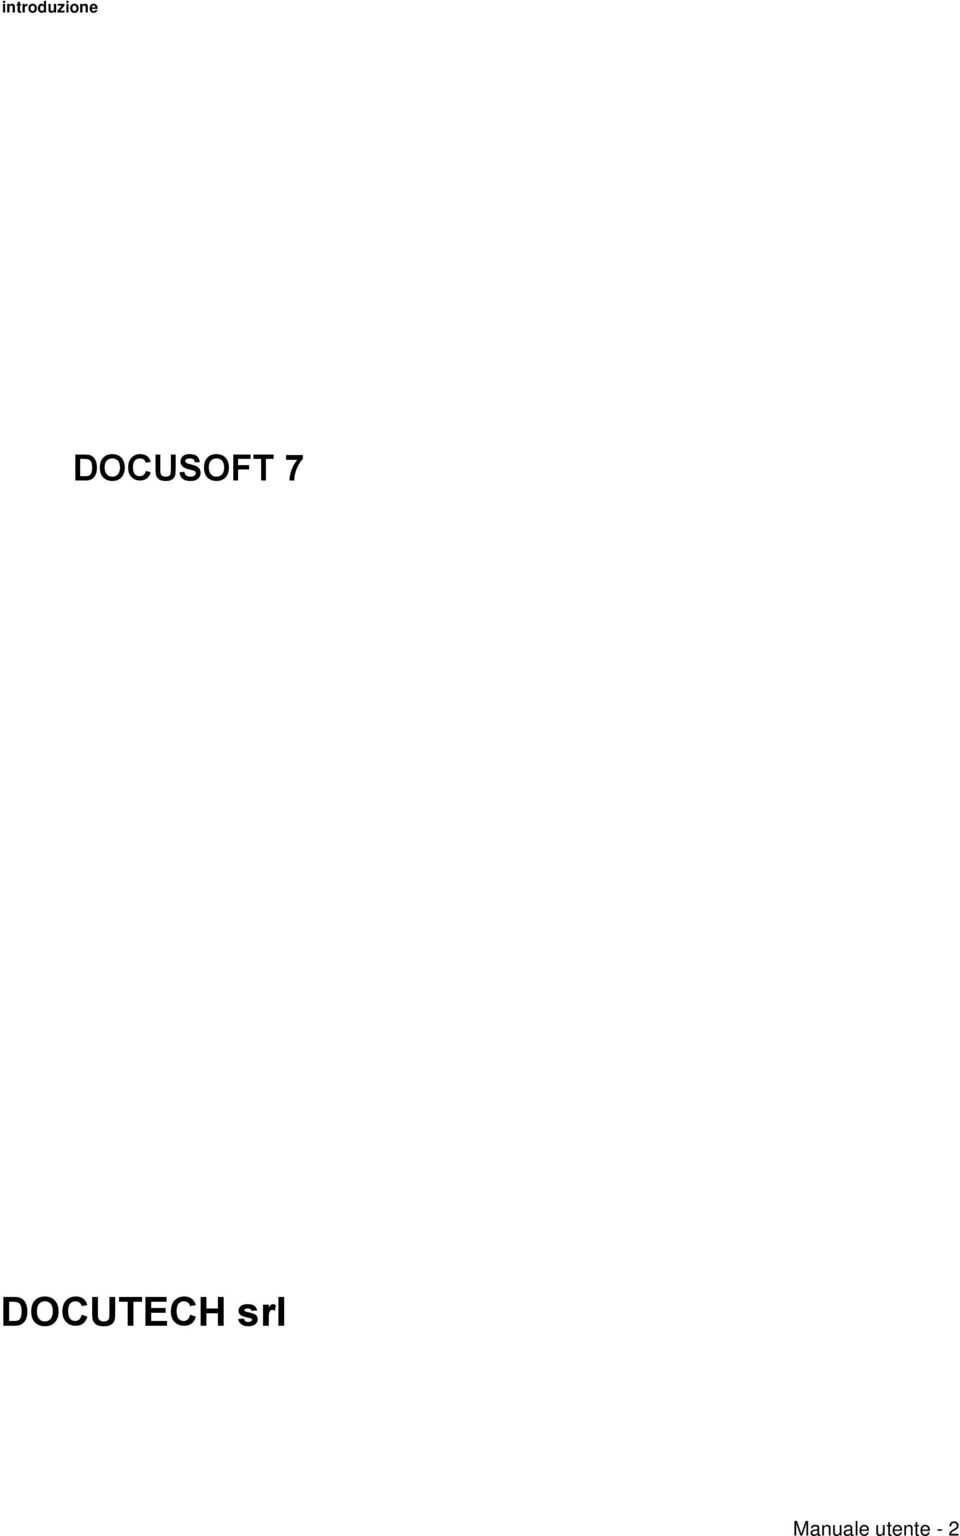 DOCUTECH srl